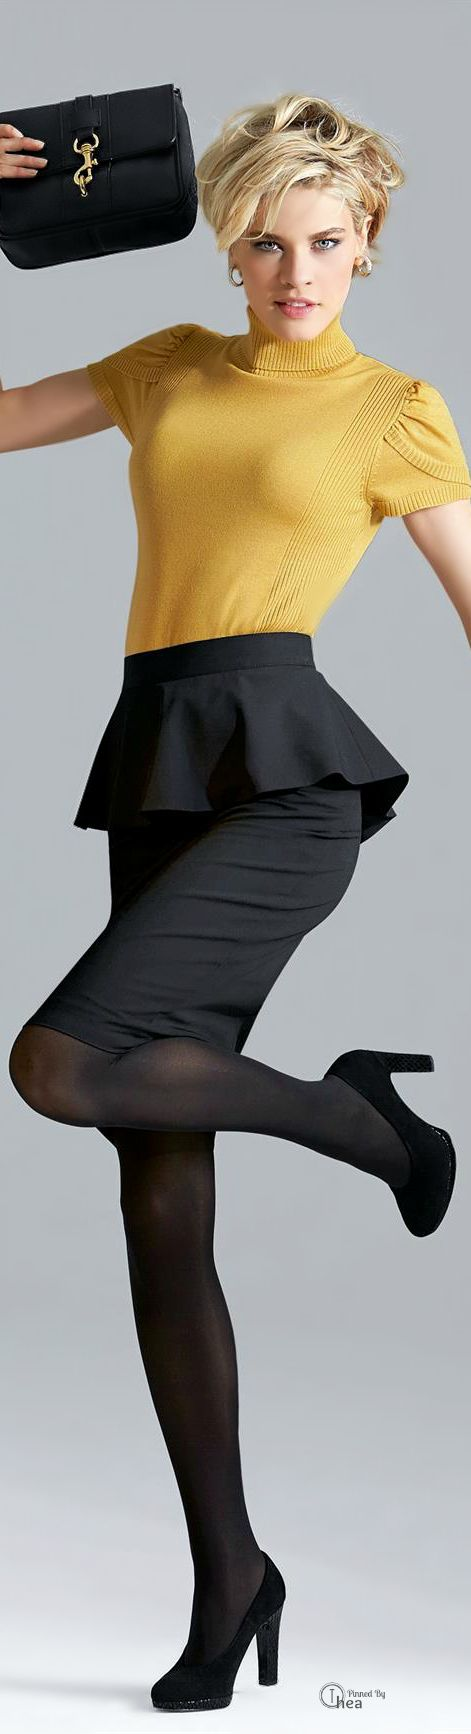 black peplum skirt and yellow shirt, business causal outfit for the office